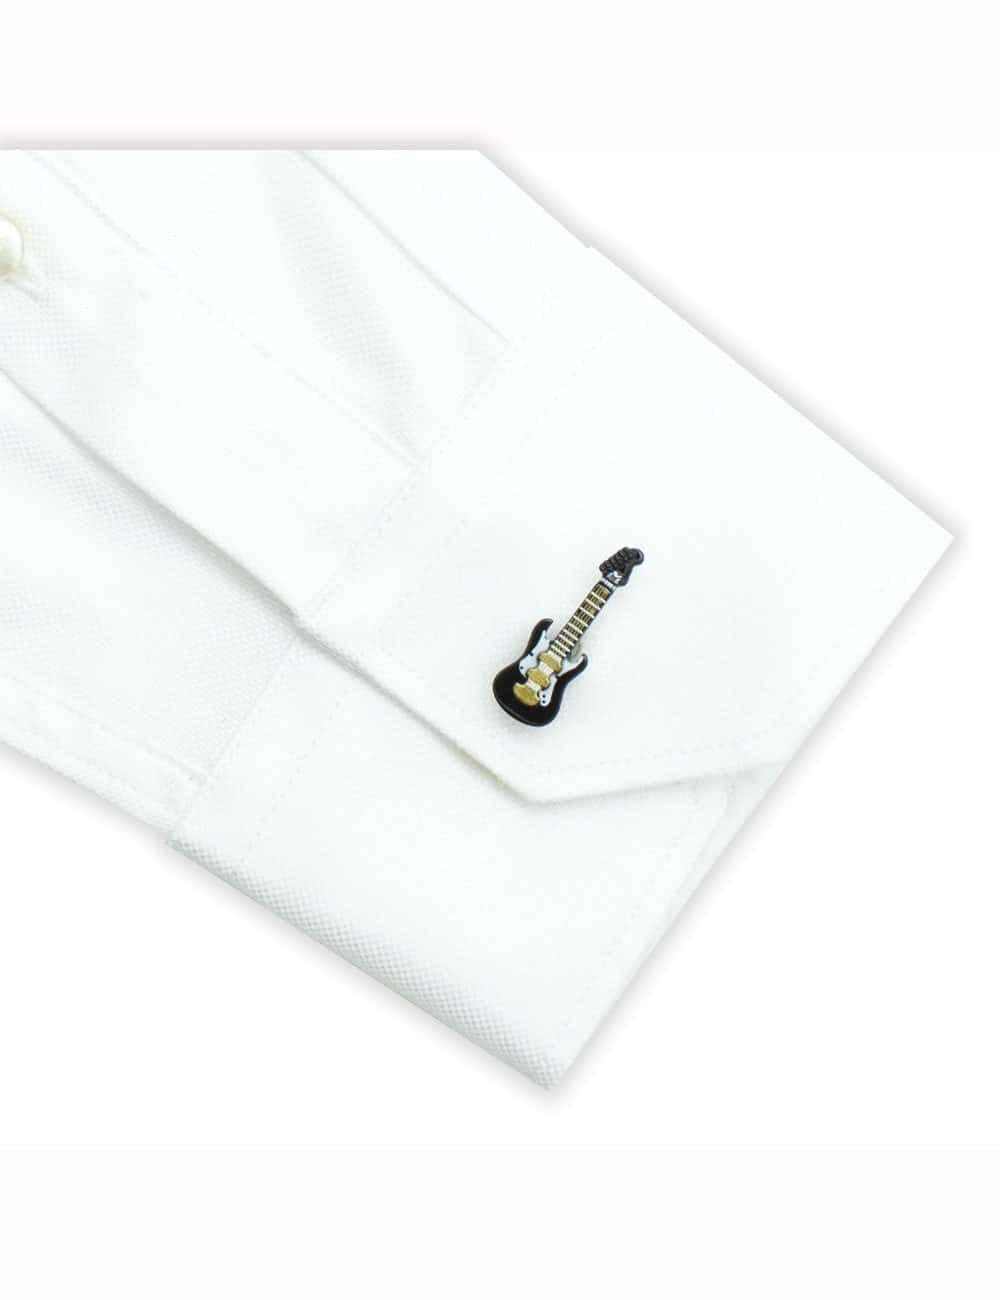 Black Electric Guitar with White and Gold Details Cufflink C212NH-016A